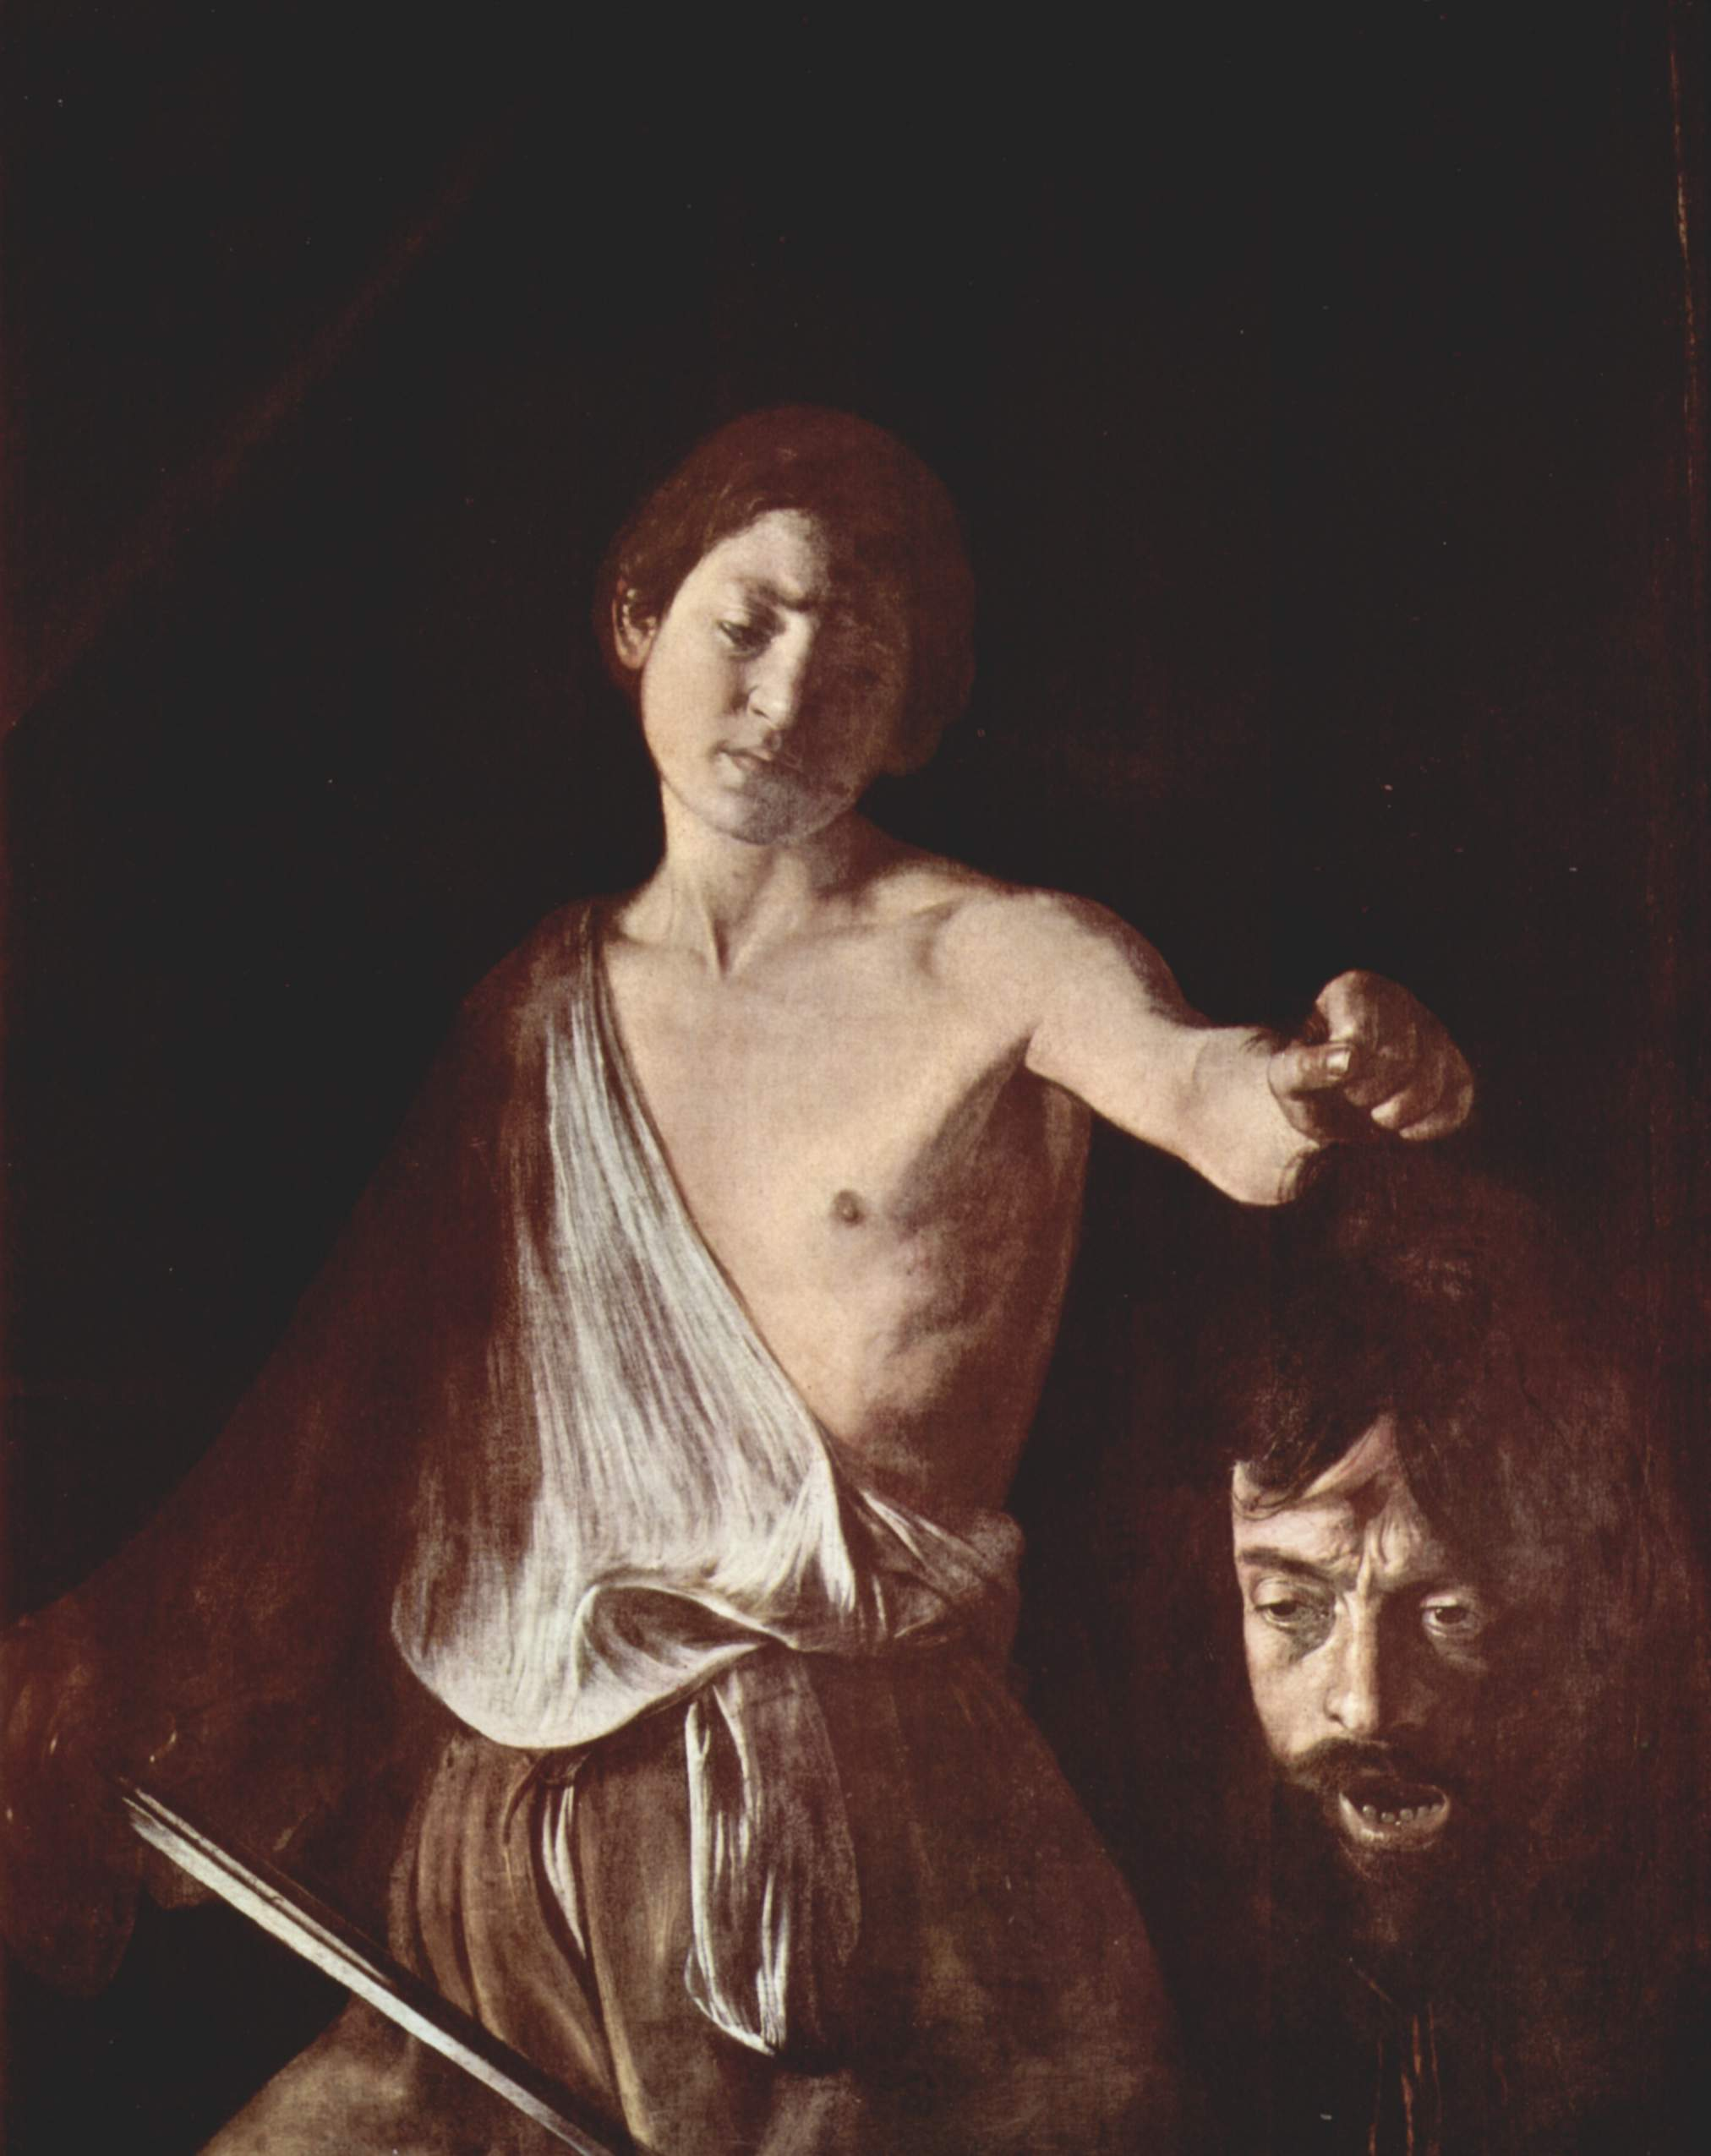 An Introduction to Caravaggio in 5 Paintings